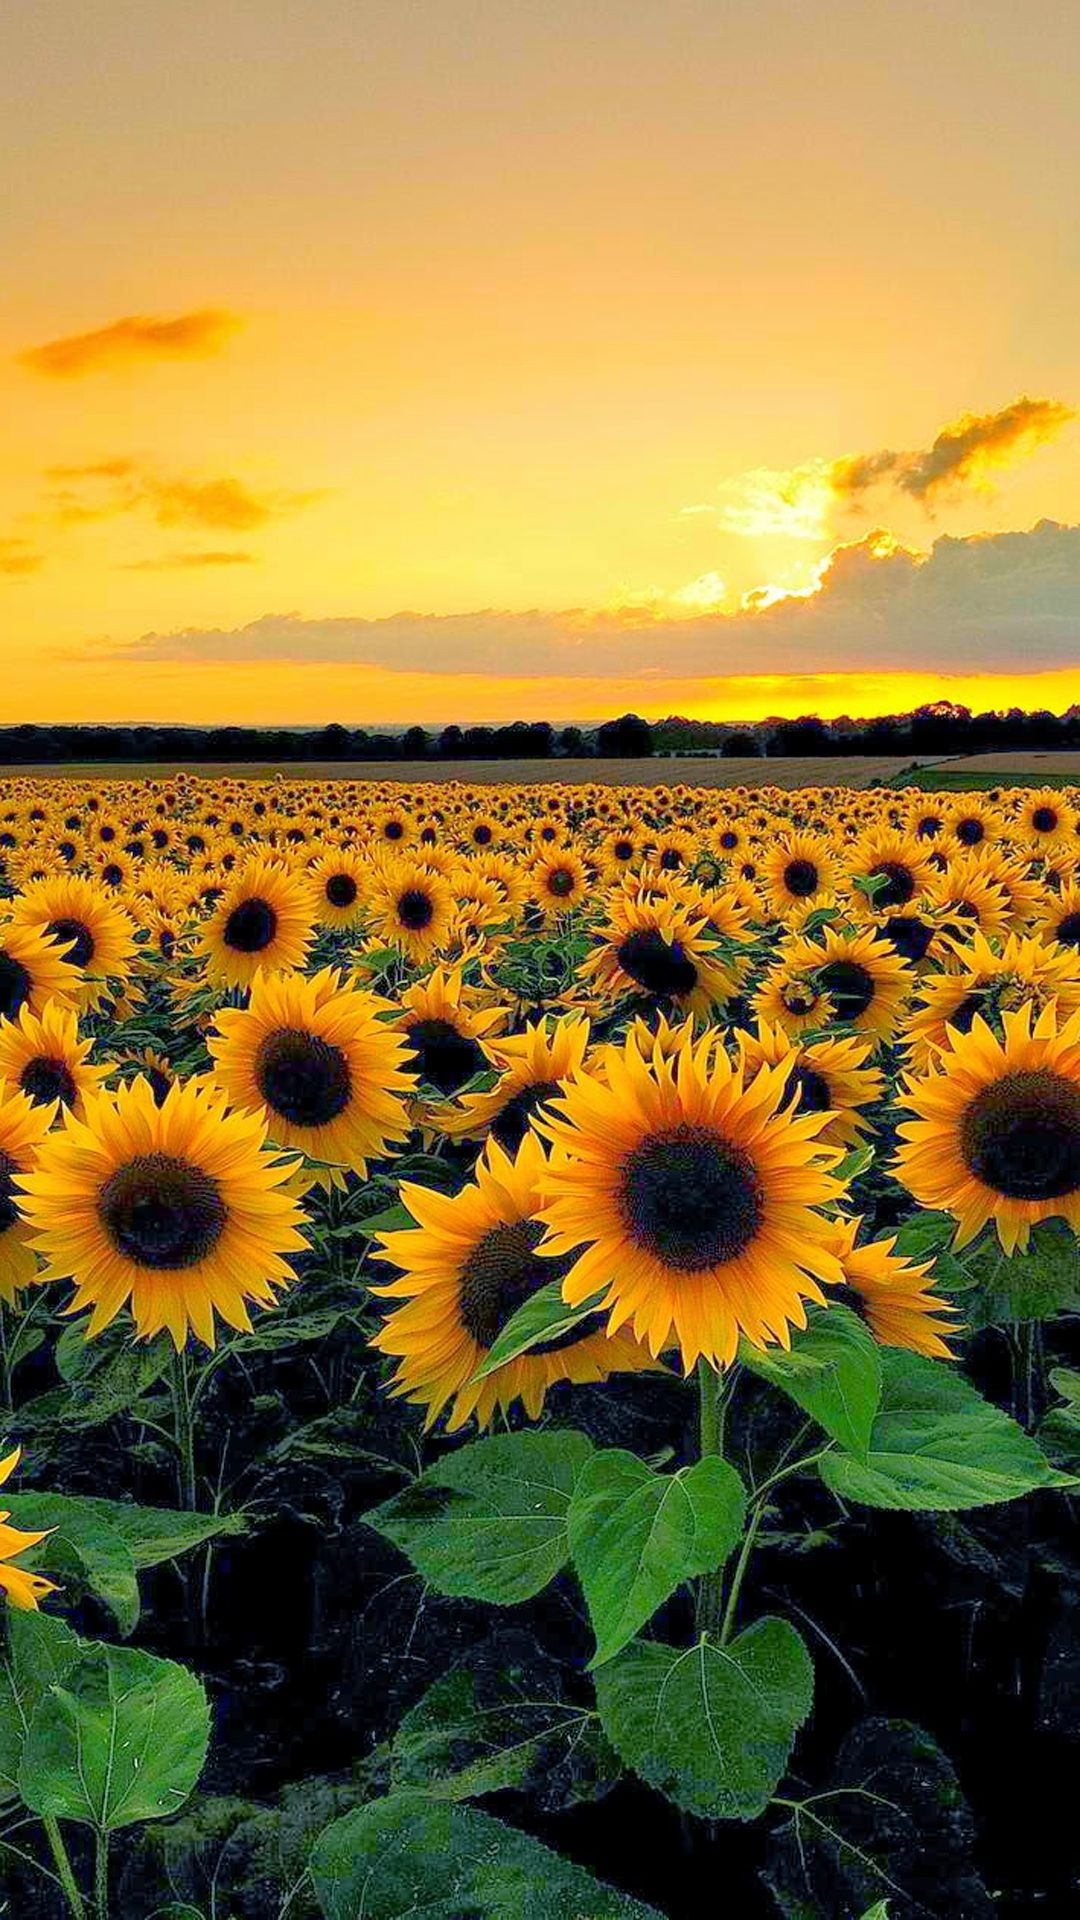 Sunset View From Sunflower Field | Craft Ideas | Pinterest ...